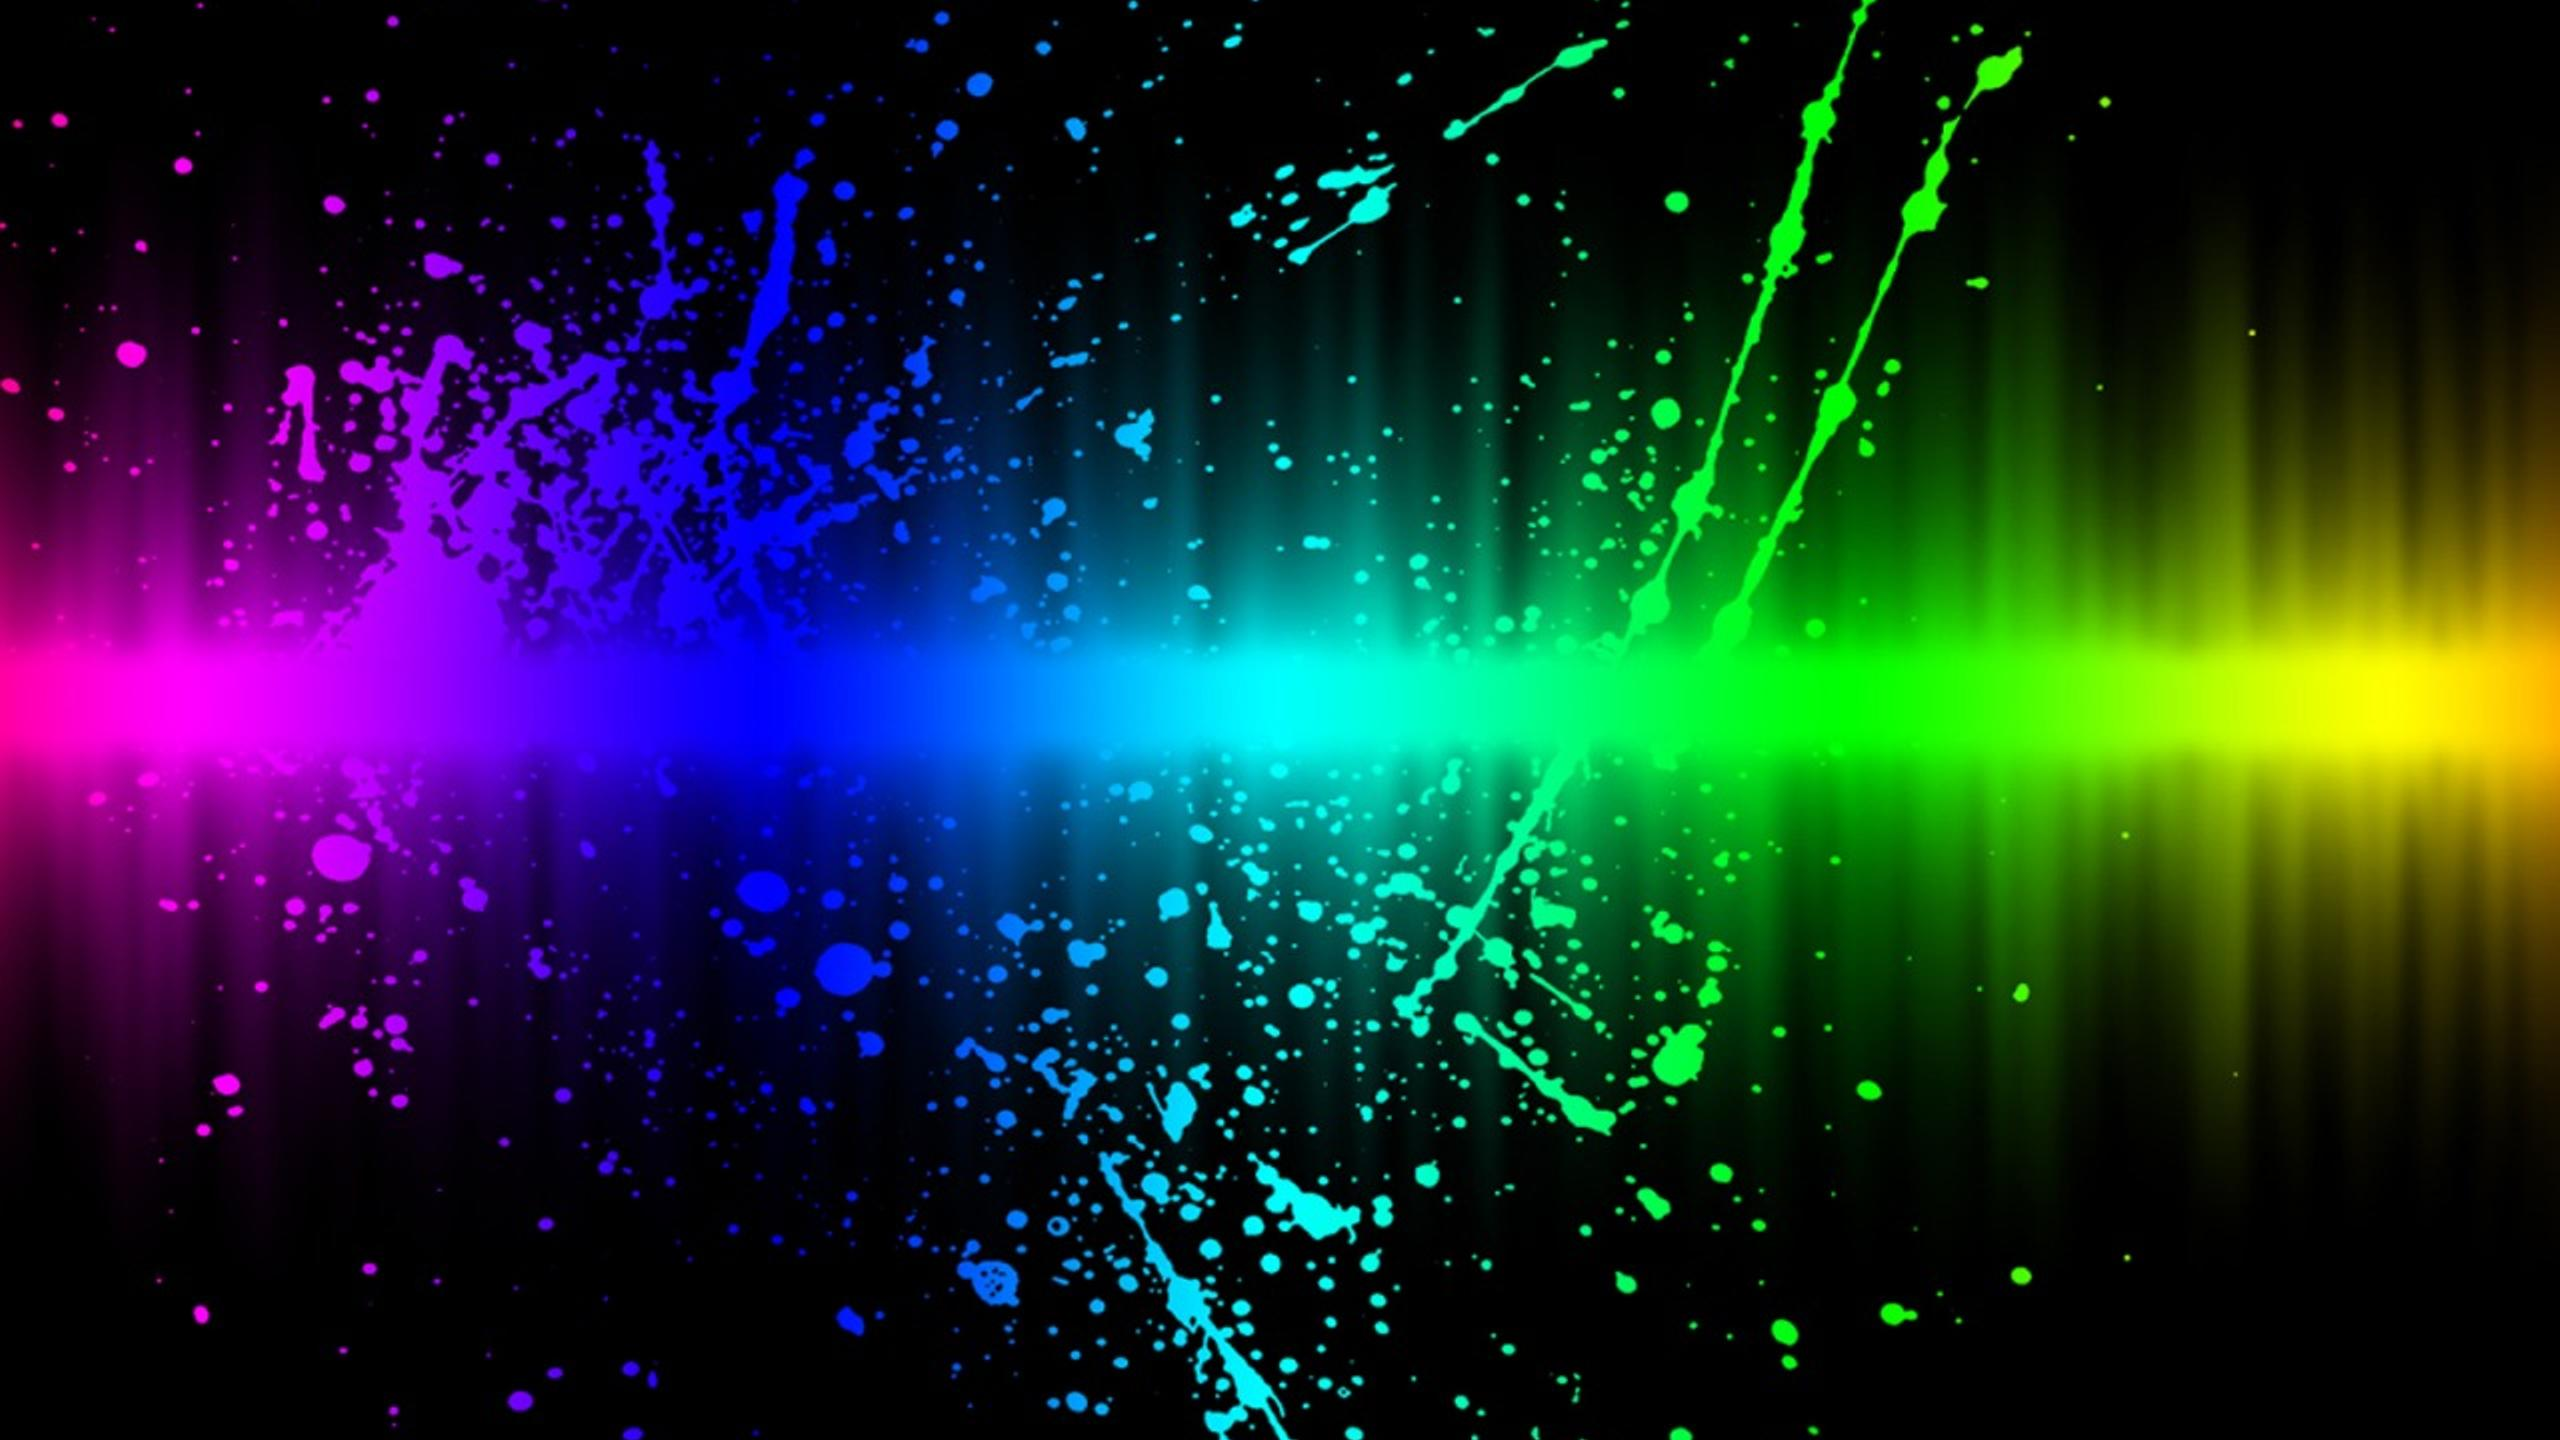 Download Wallpaper 2560x1440 Colors Explosion